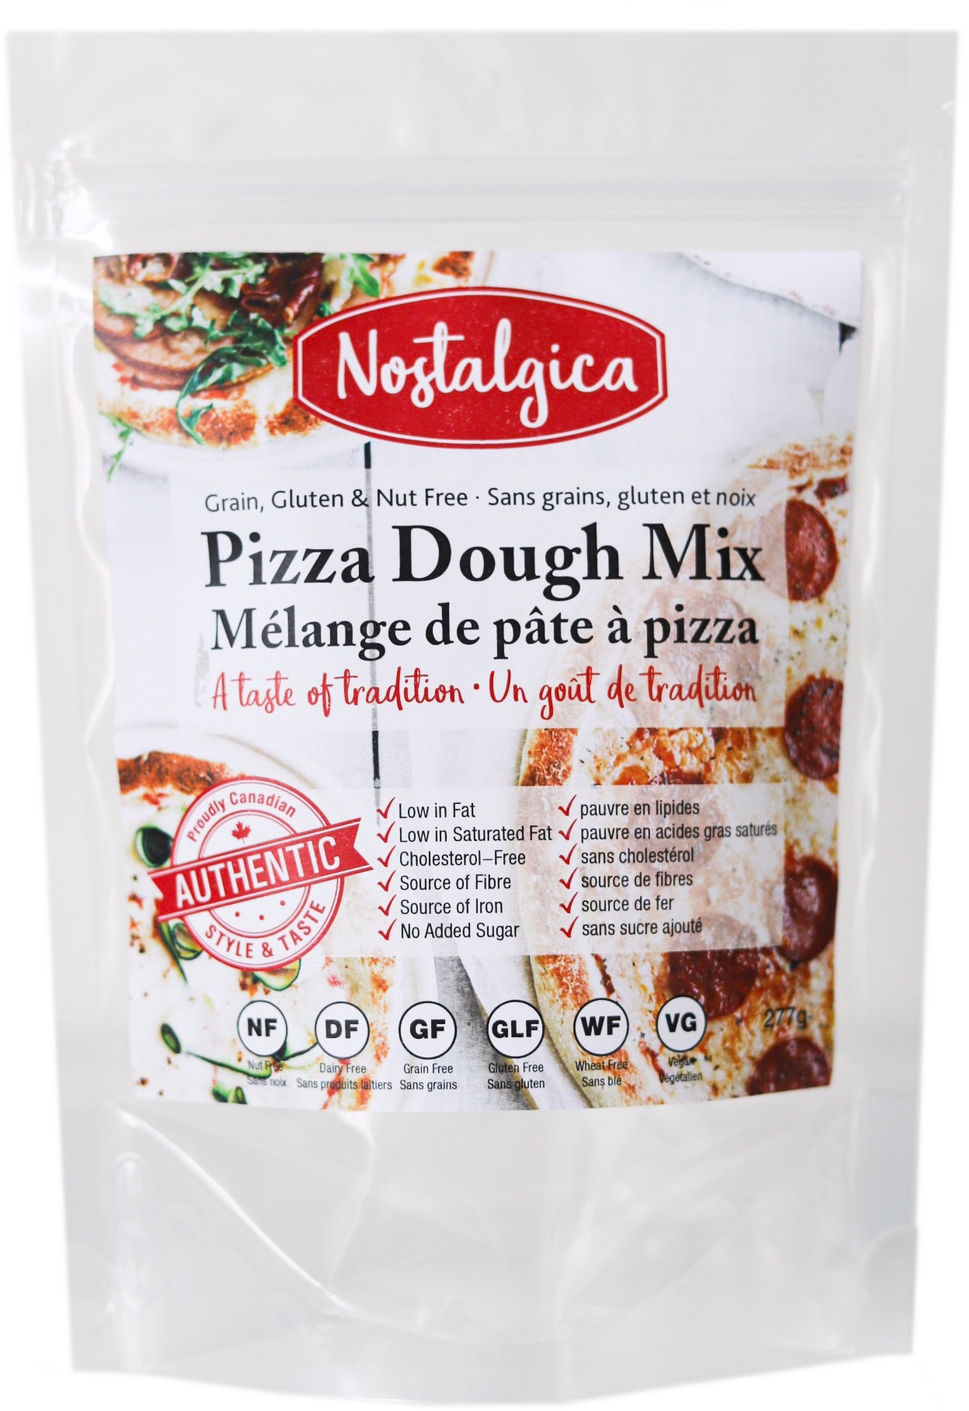 Grain, Gluten and Nut Free Pizza Dough Mix